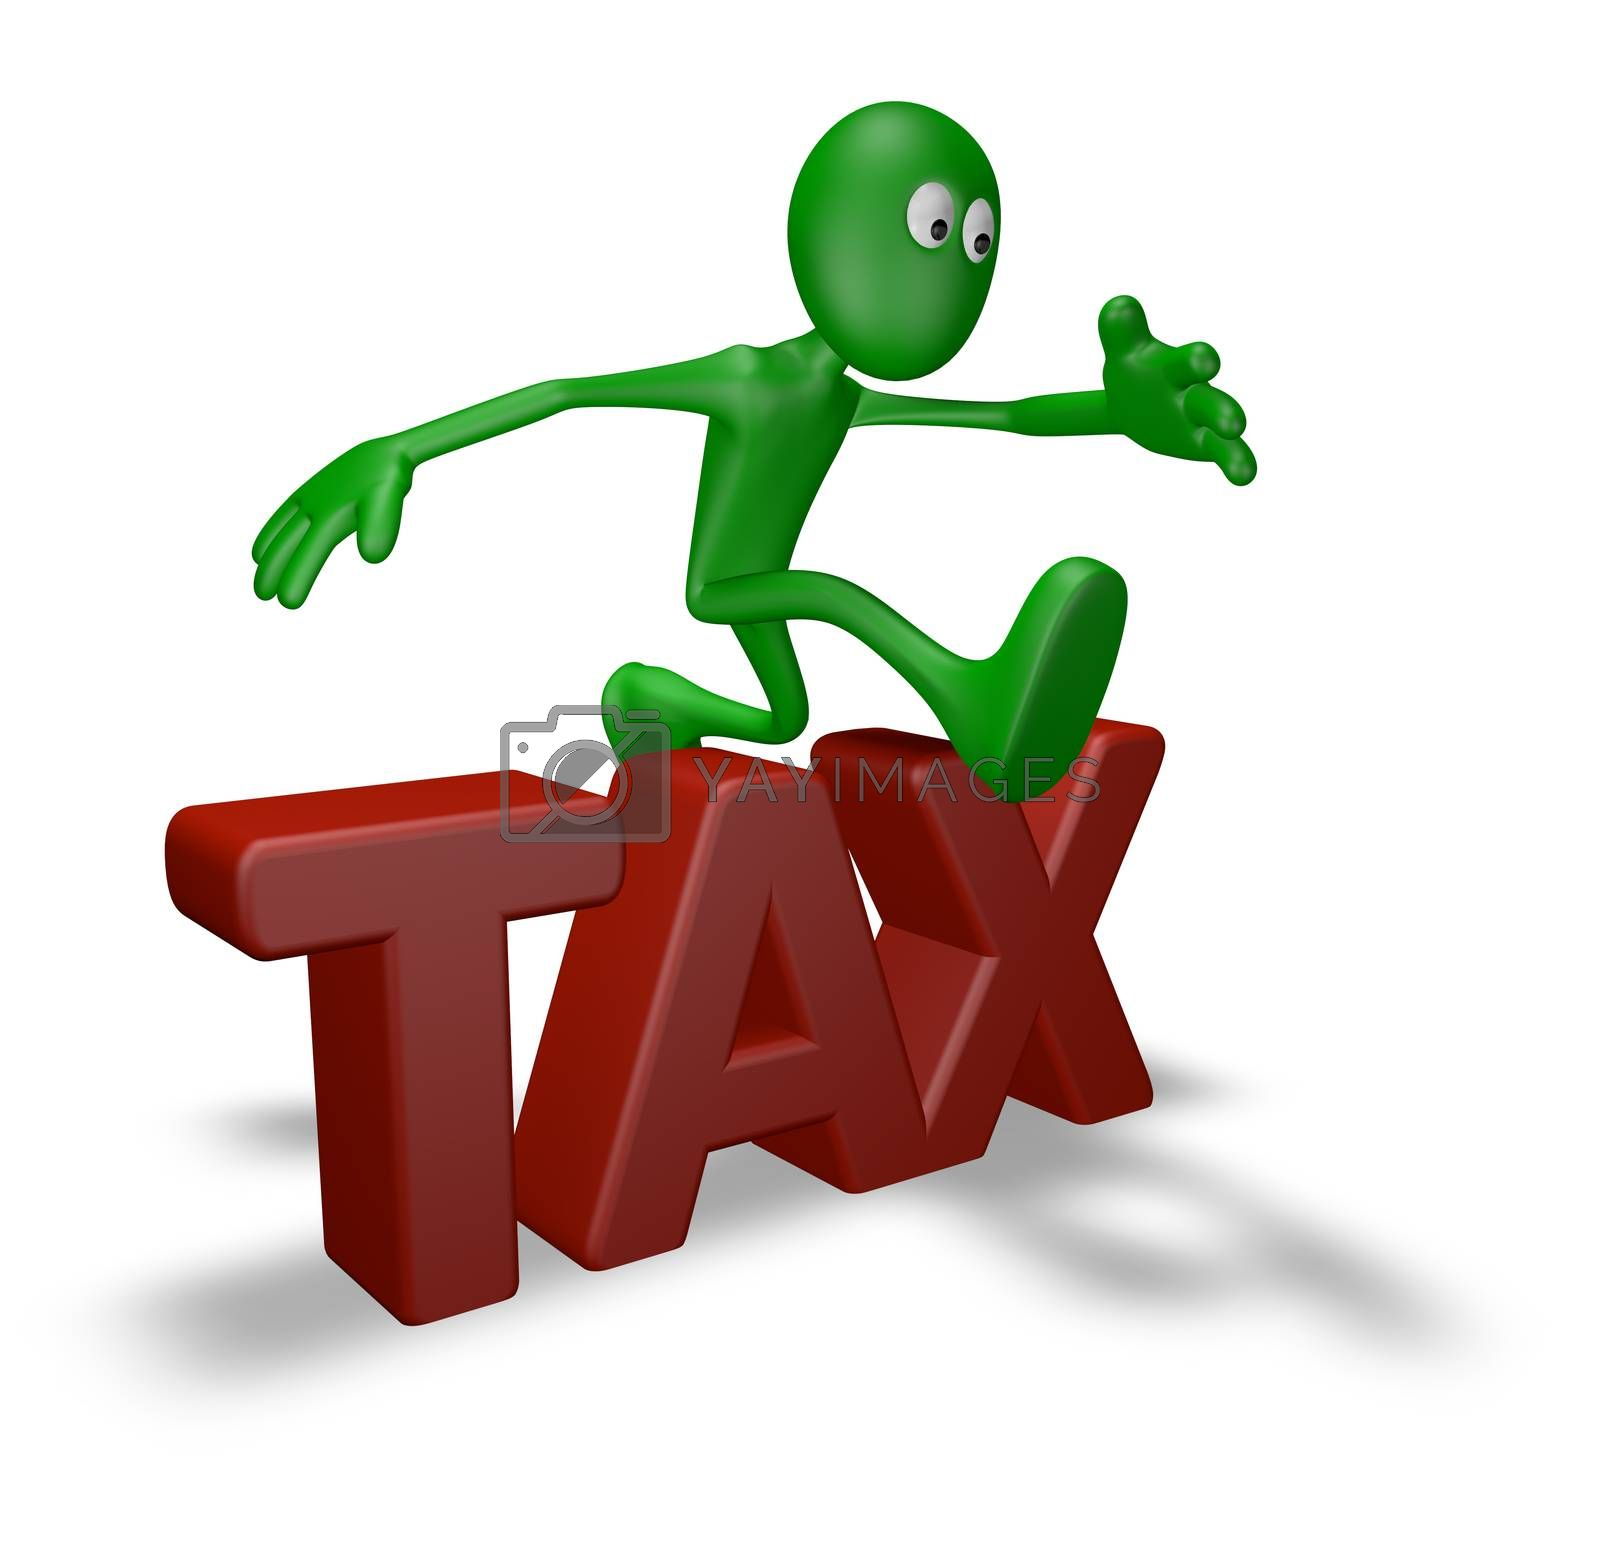 cartoon guy jumps over the word tax - 3d illustration